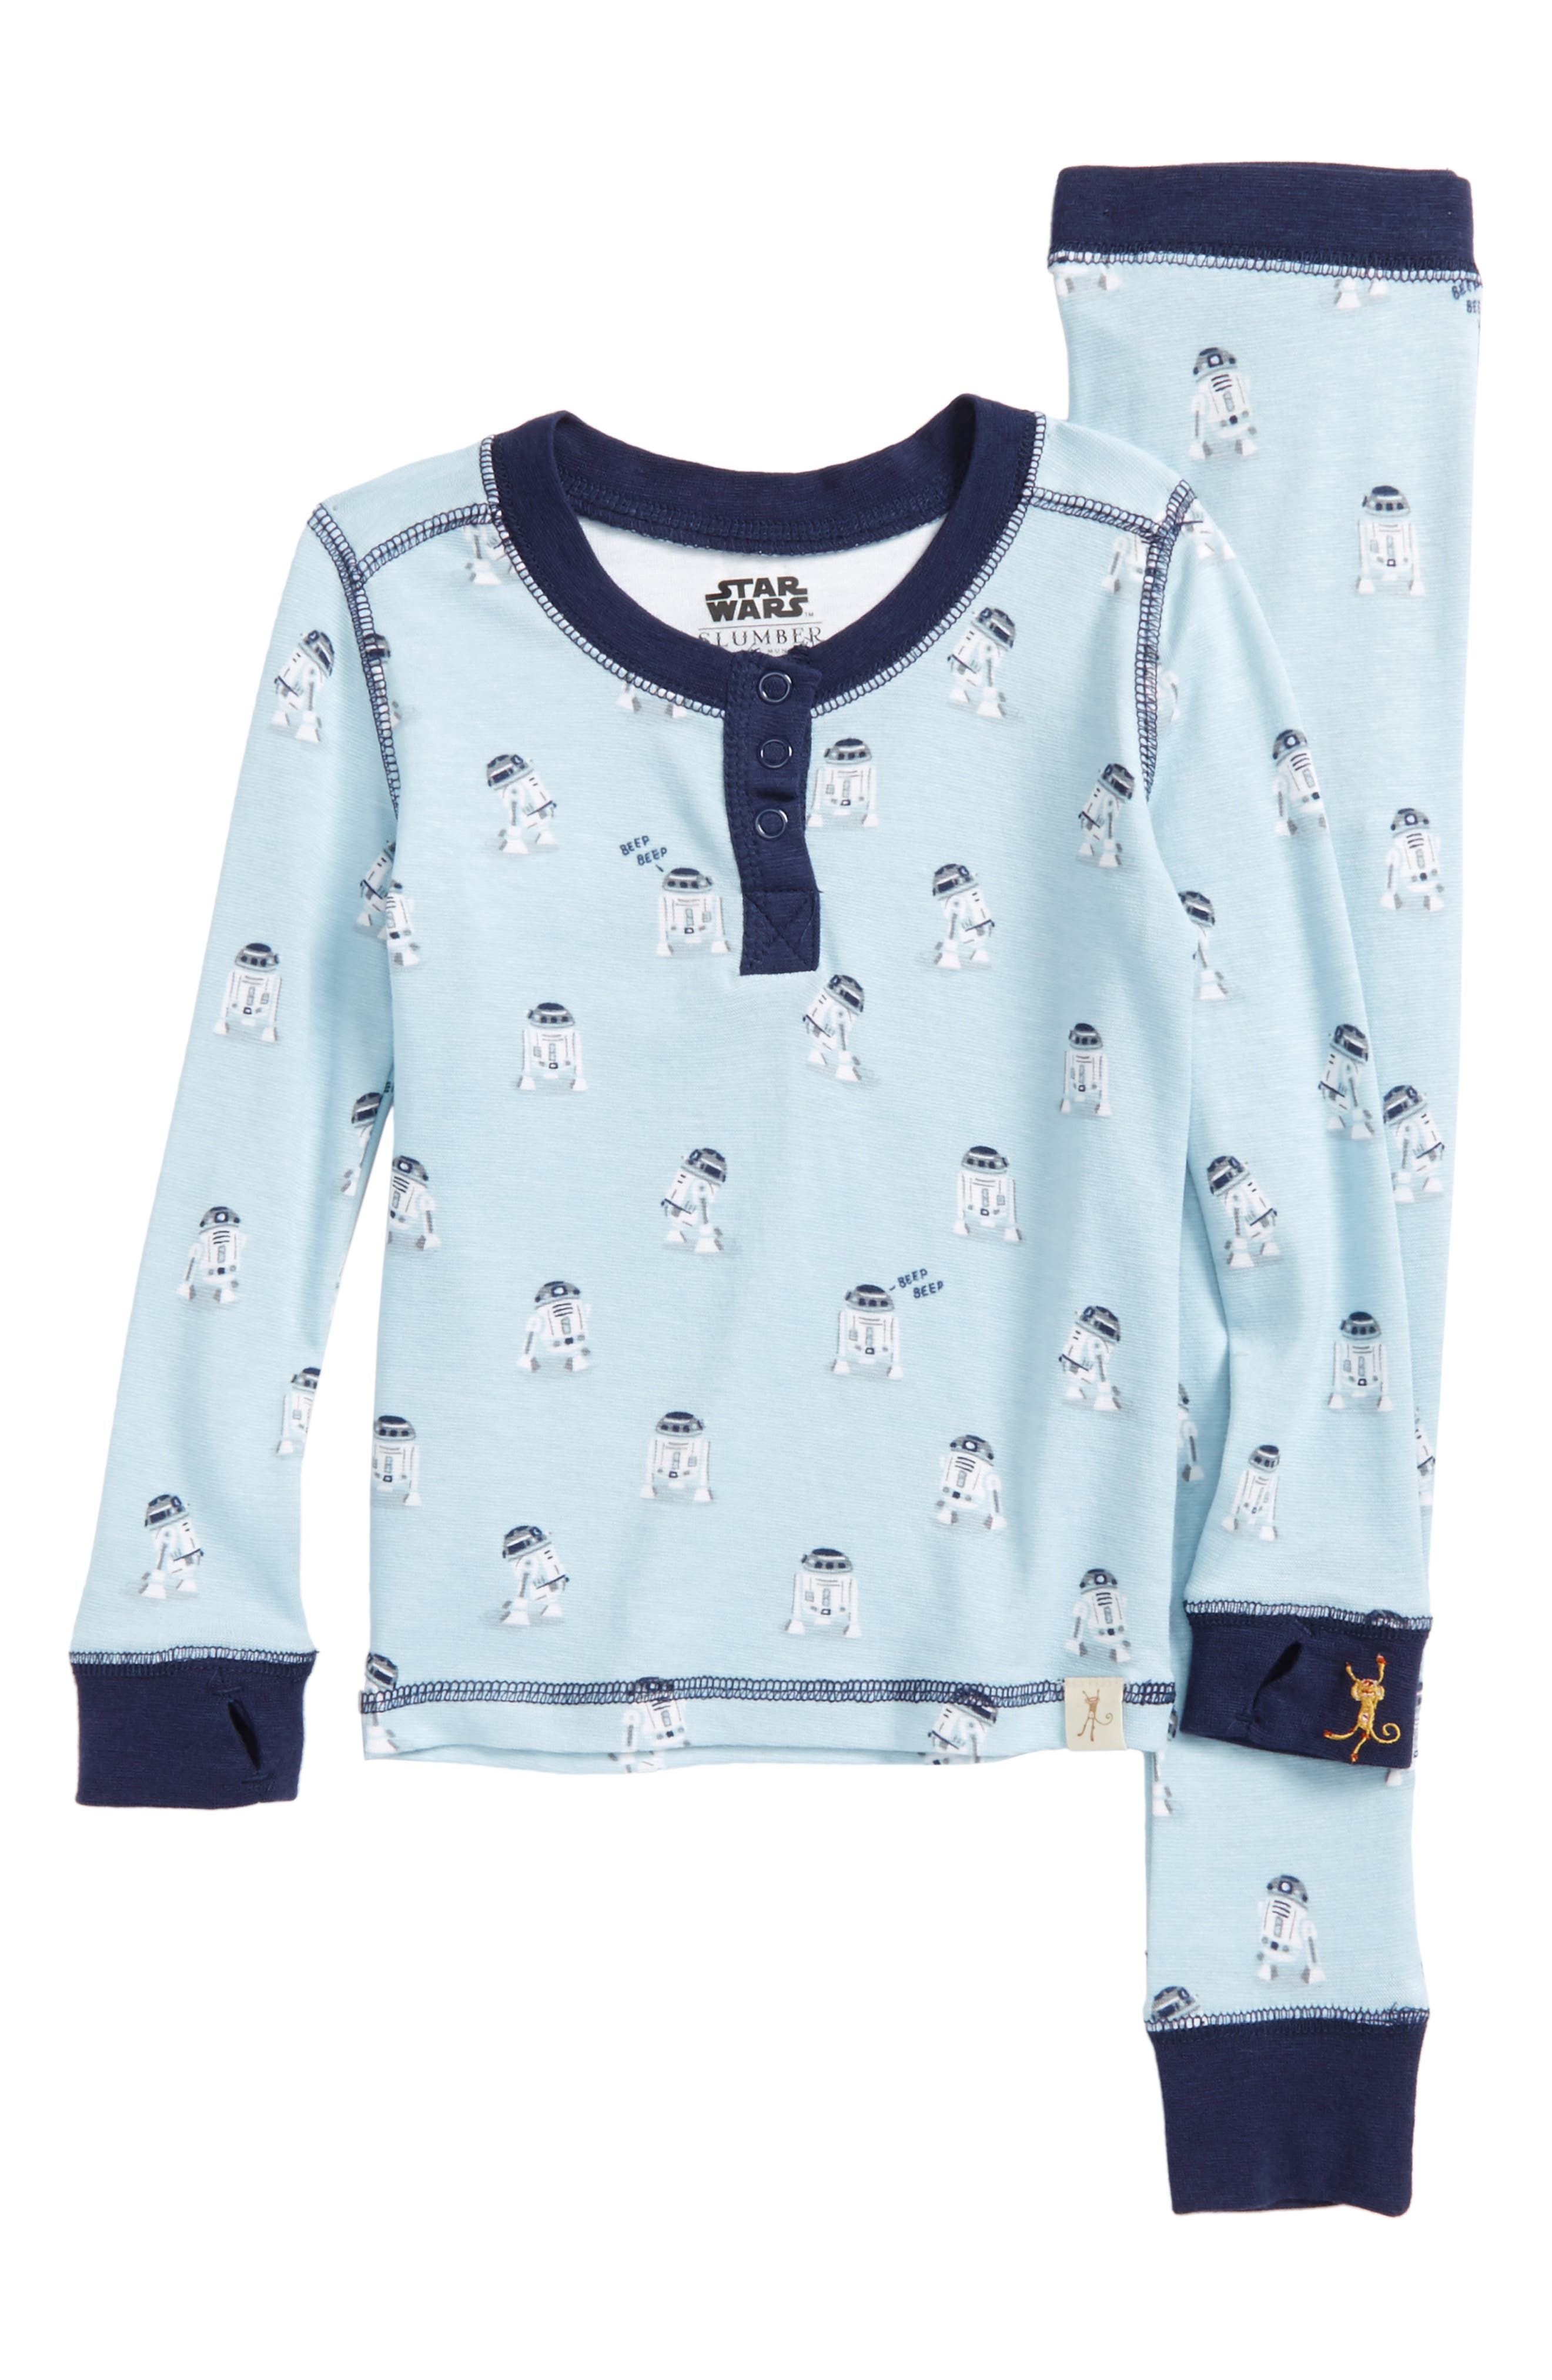 Star Wars<sup>™</sup> - R2-D2 Fitted Two-Piece Pajamas,                             Main thumbnail 1, color,                             048